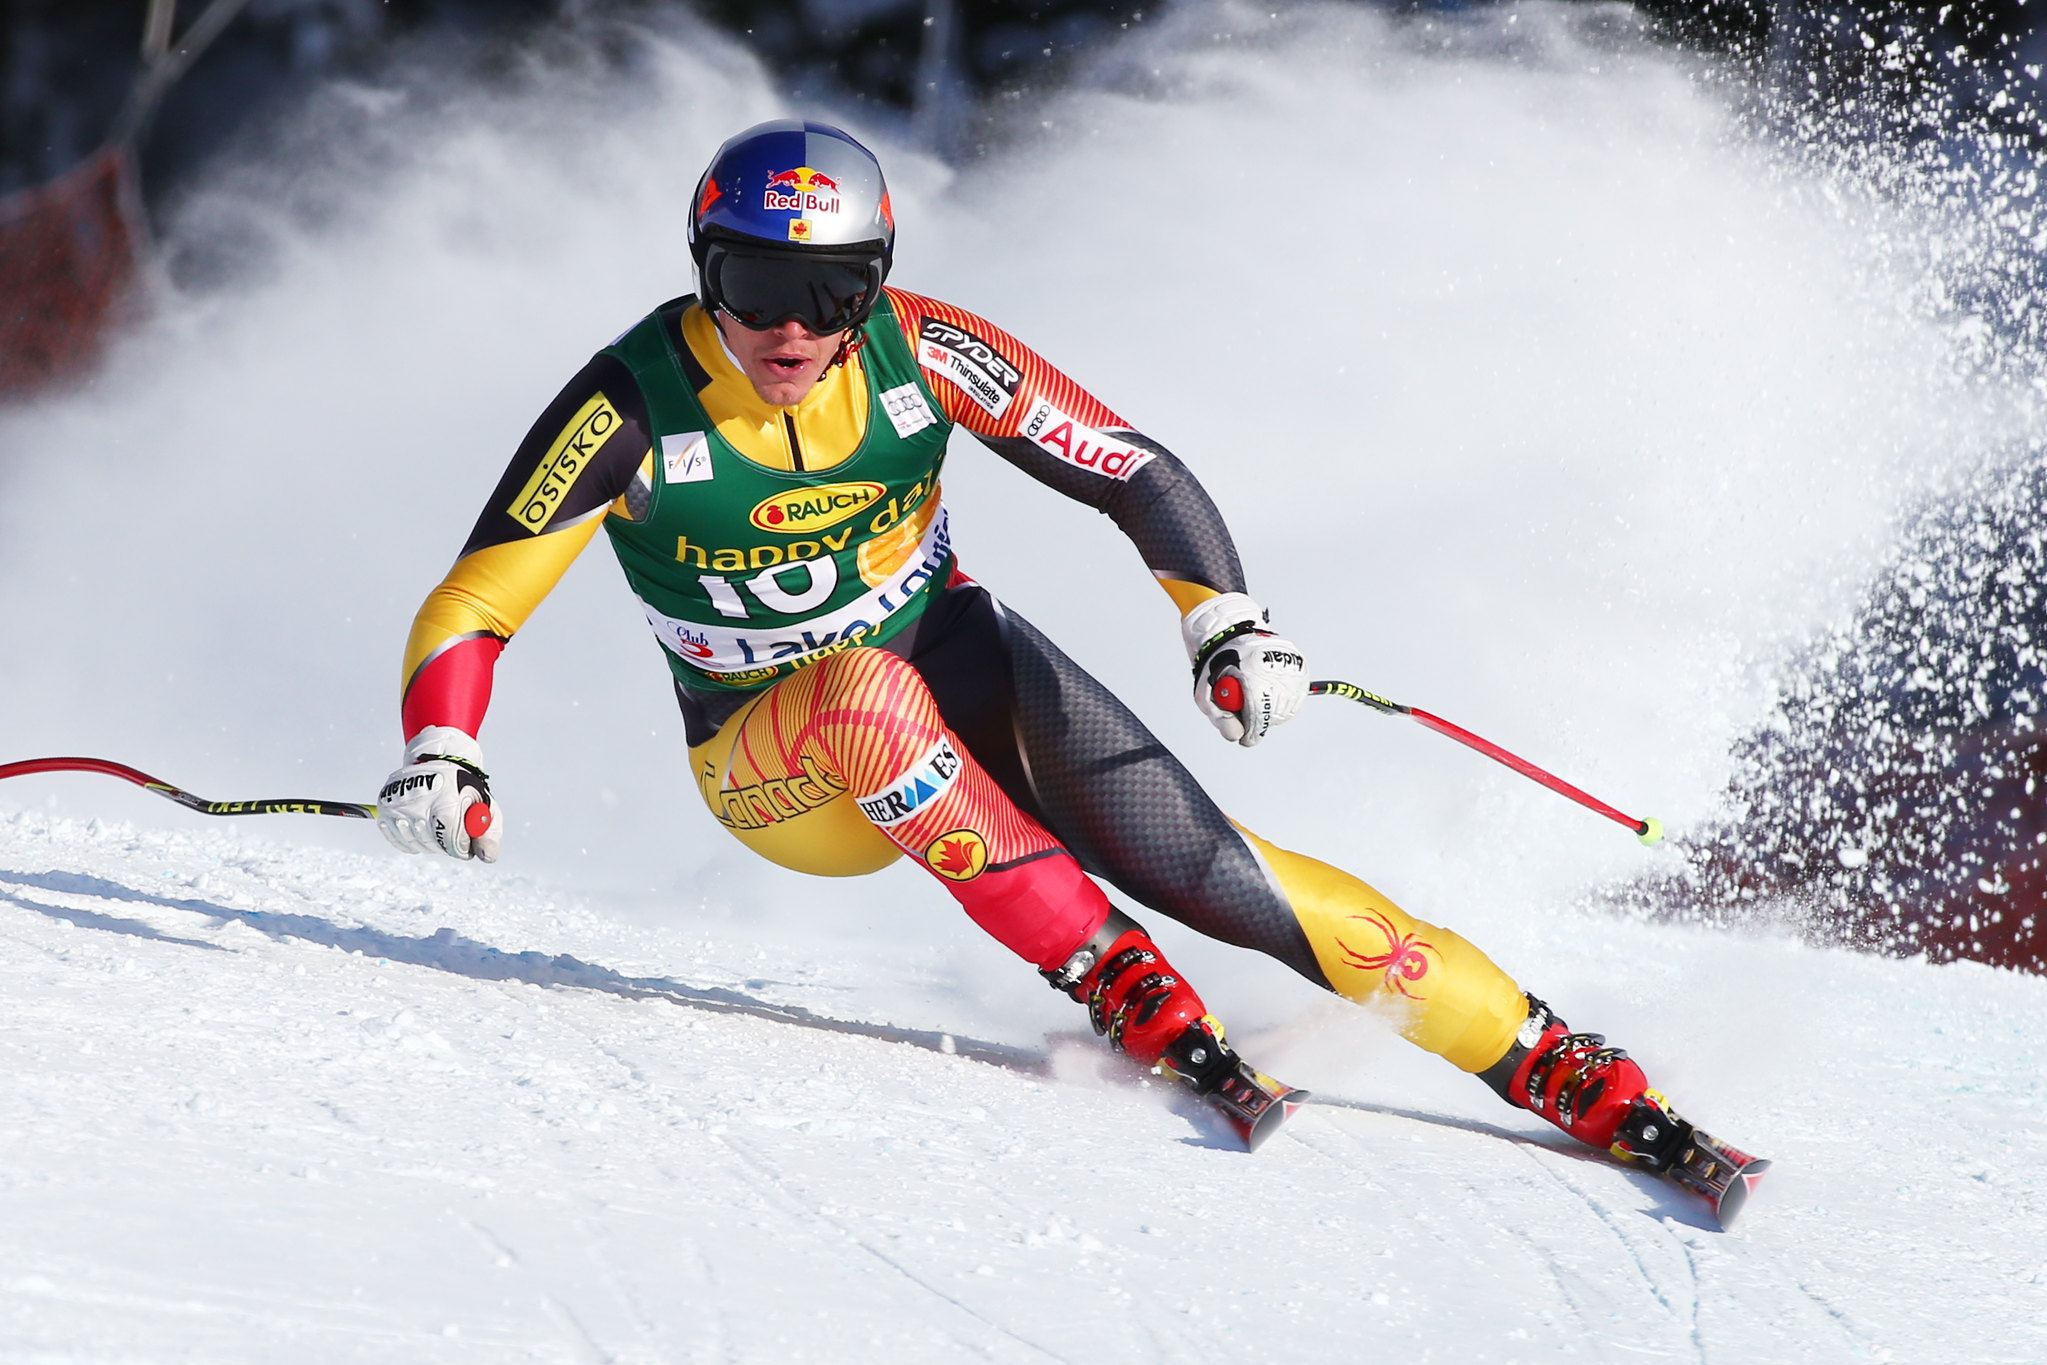 Erik Guay in action during World Cup super-G in Lake Louise.